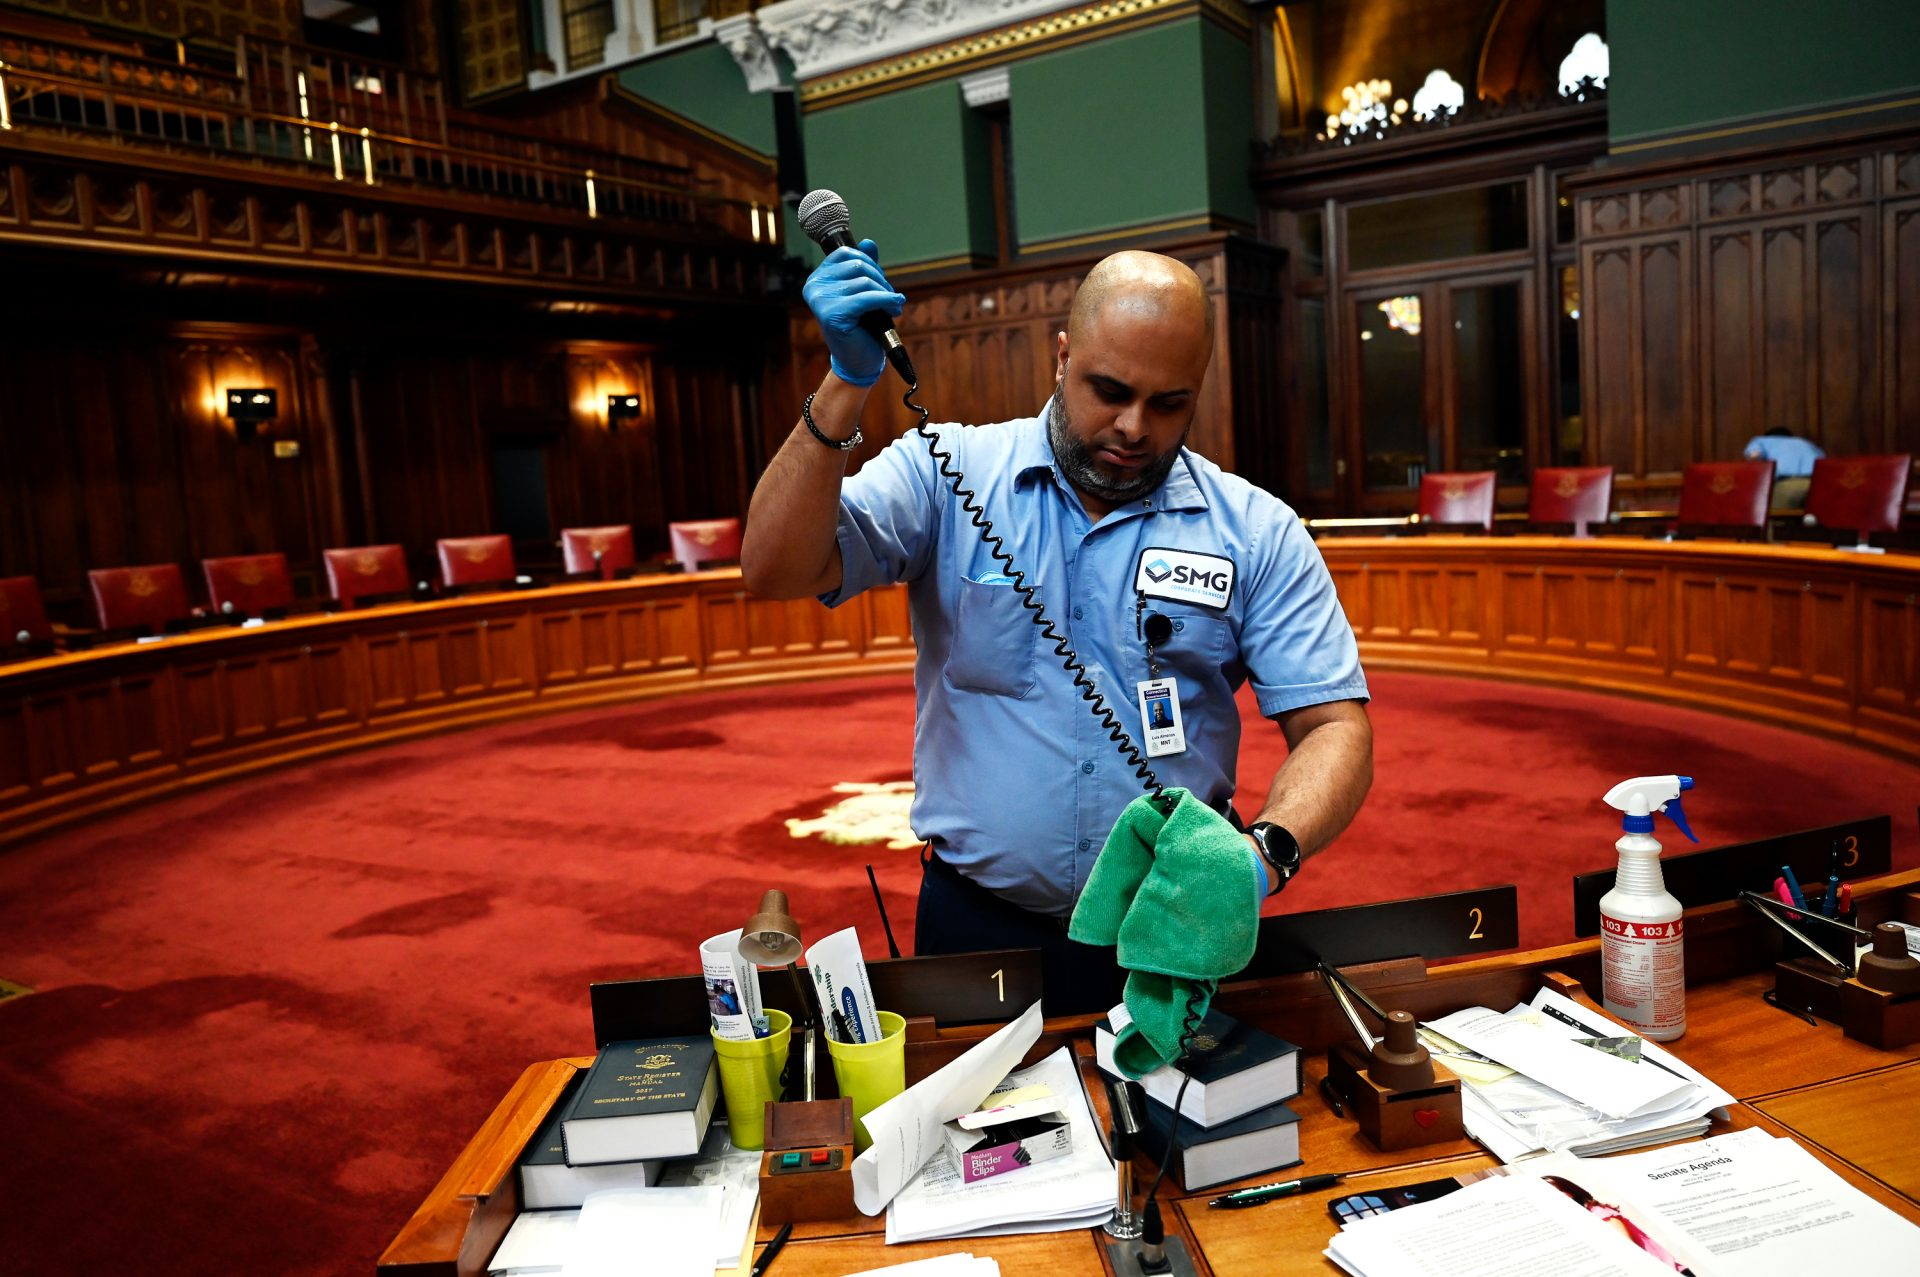 Connecticut's legislature is suspended until at least April 12 to follow the state's social distancing guidelines.Day porter Luis Almenas disinfected all the microphones during a deep clean in the Senate chambers on March 12.